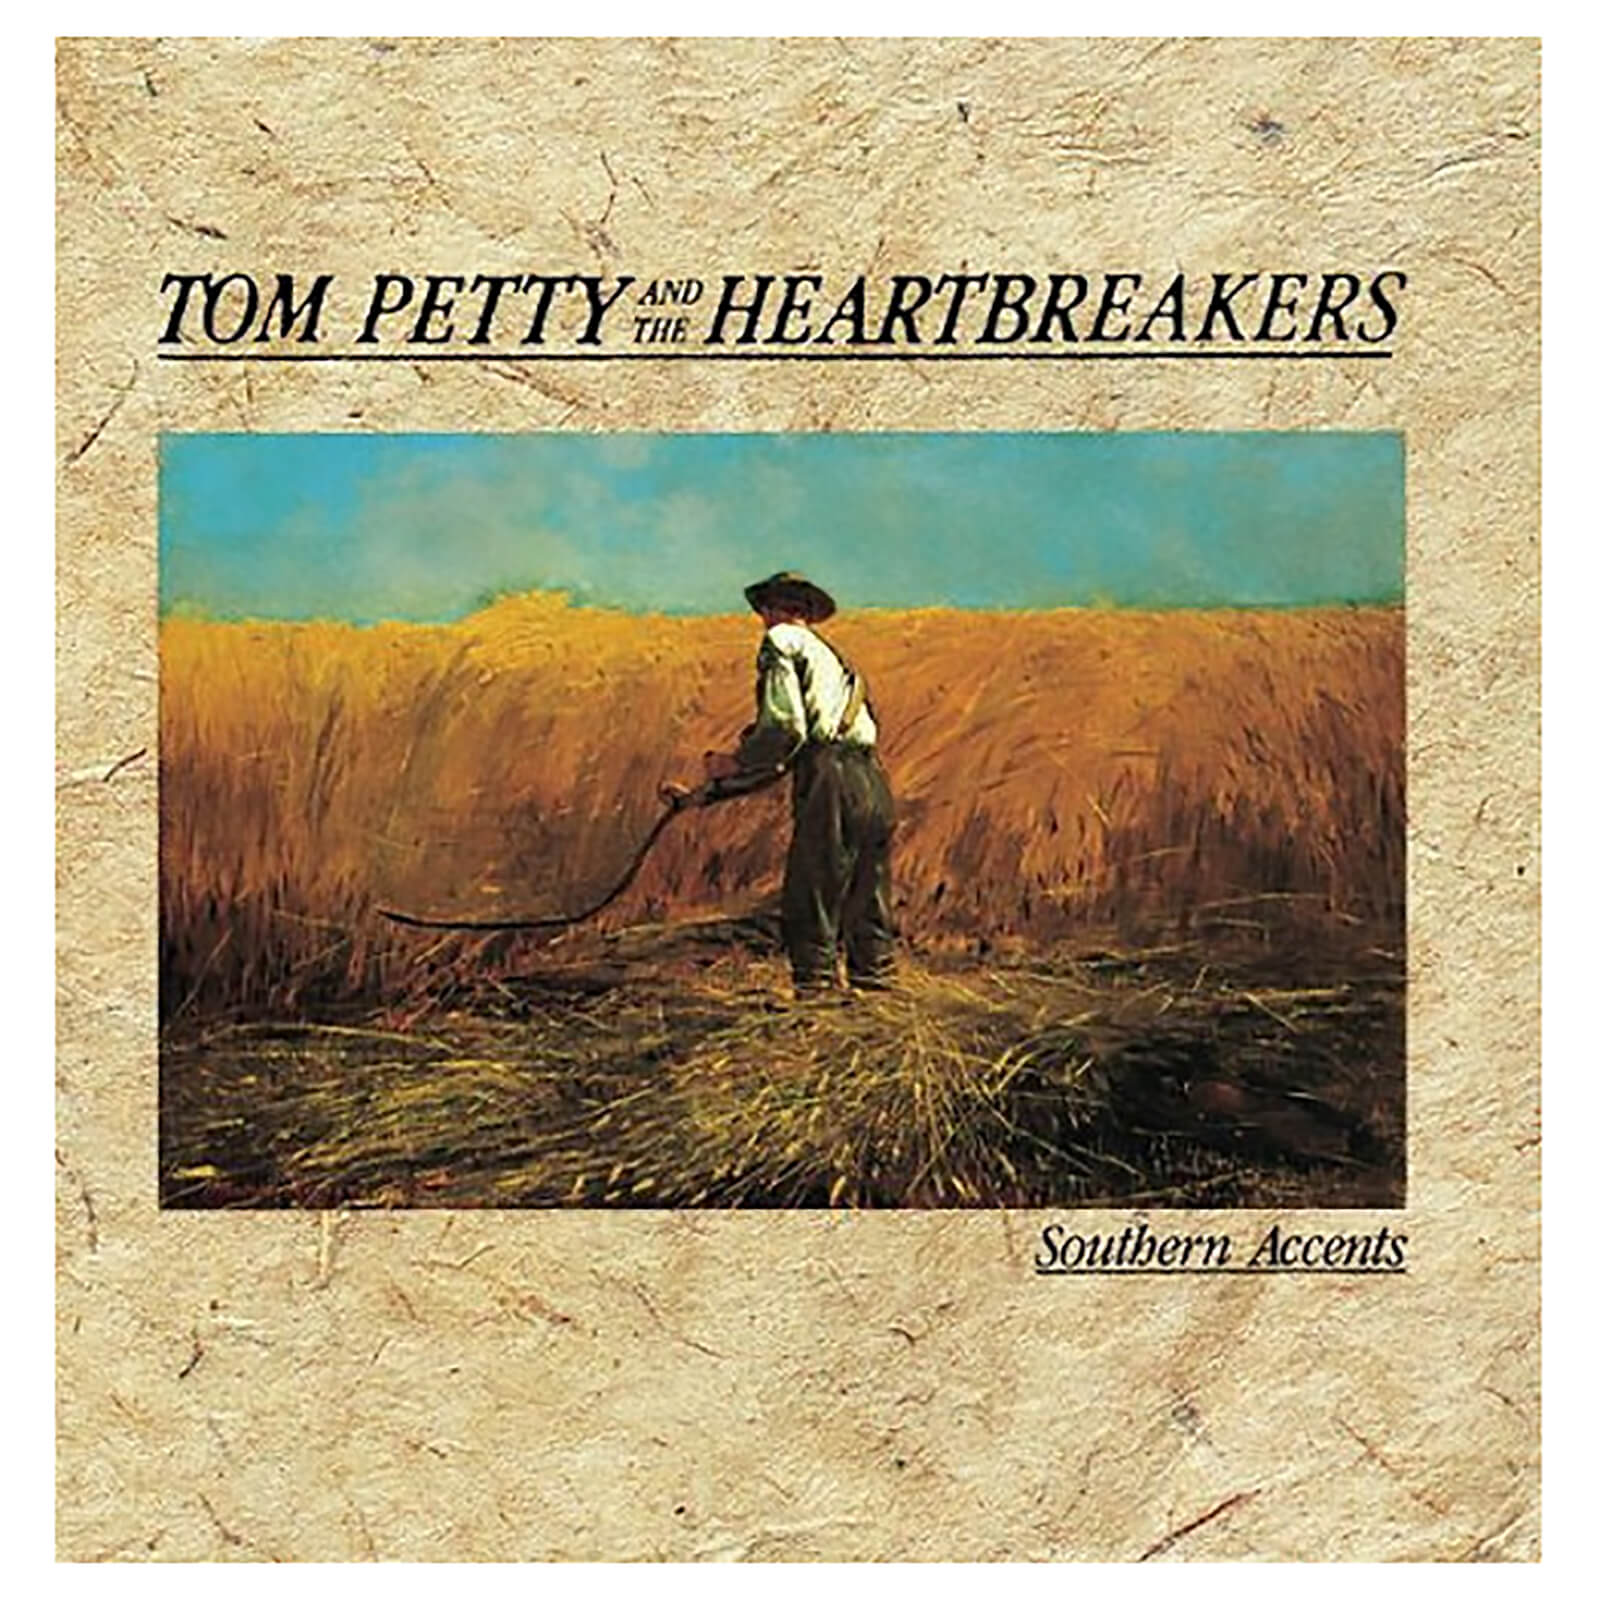 Tom Petty & The Heartbreakers - Southern Accents - Vinyl